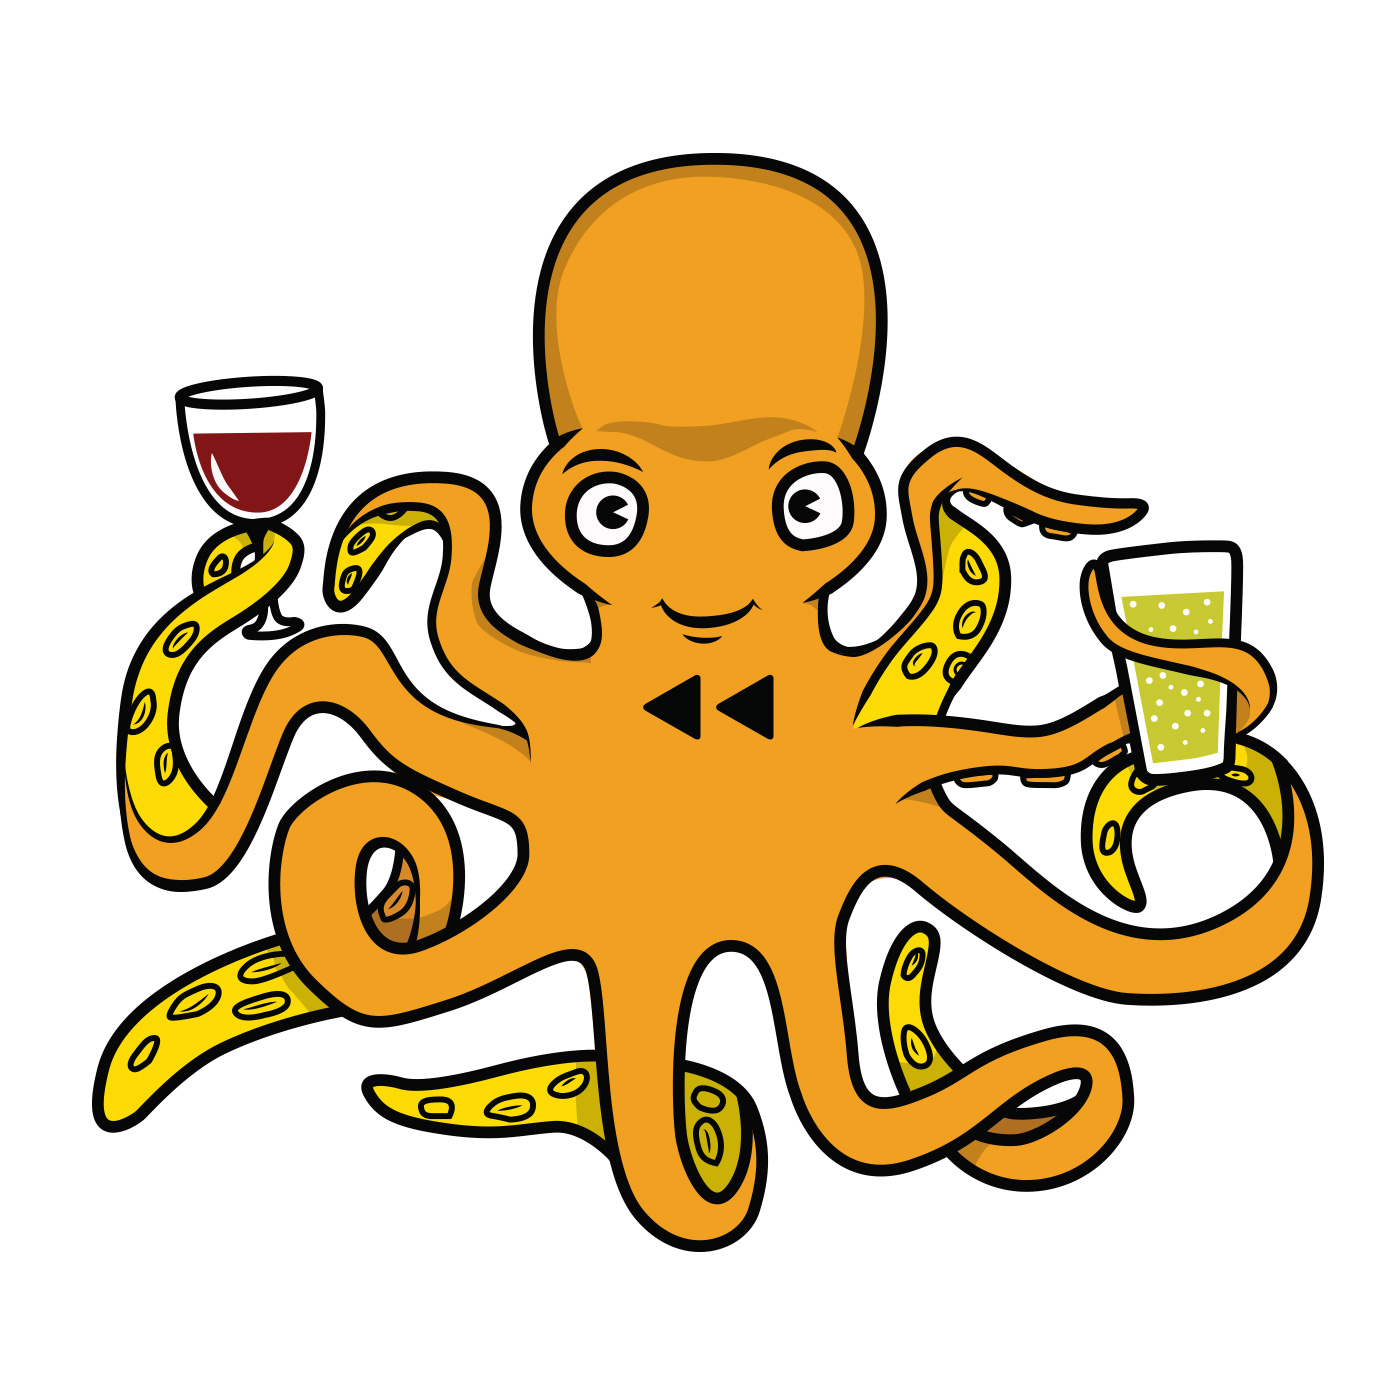 Octopus mascot illustration for  Rewined Beer & Wine Bar